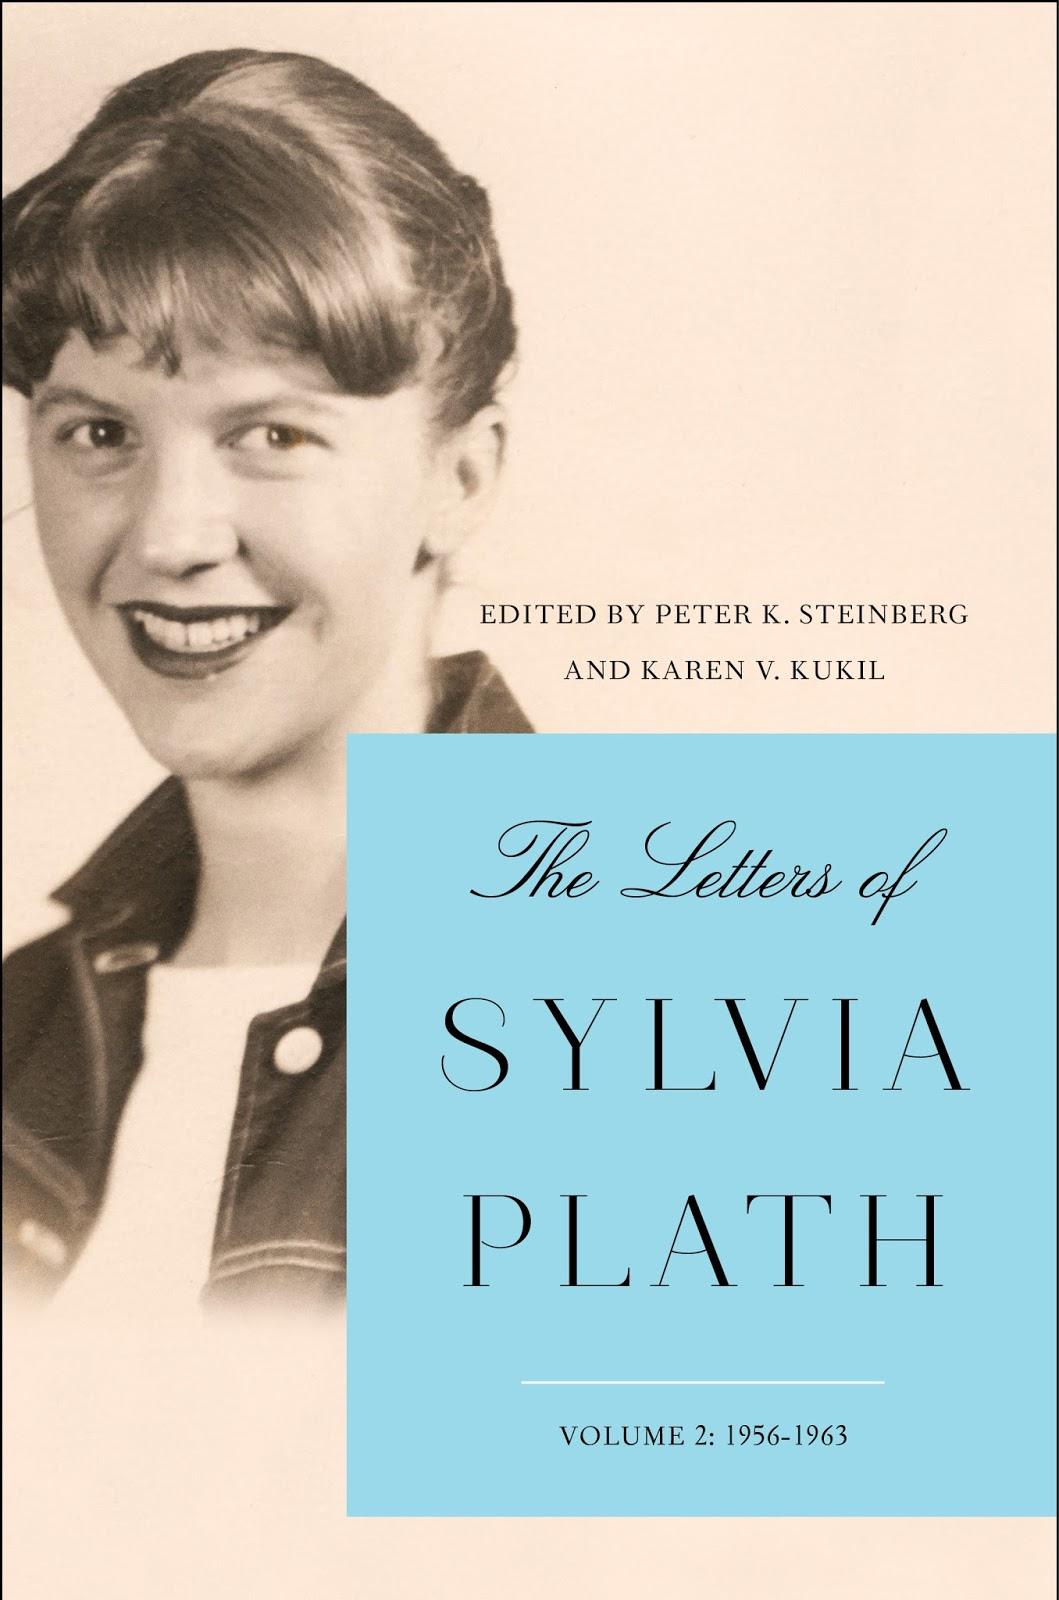 Sylvia Plath poem written two weeks before she died reveals 'disturbed' state of mind